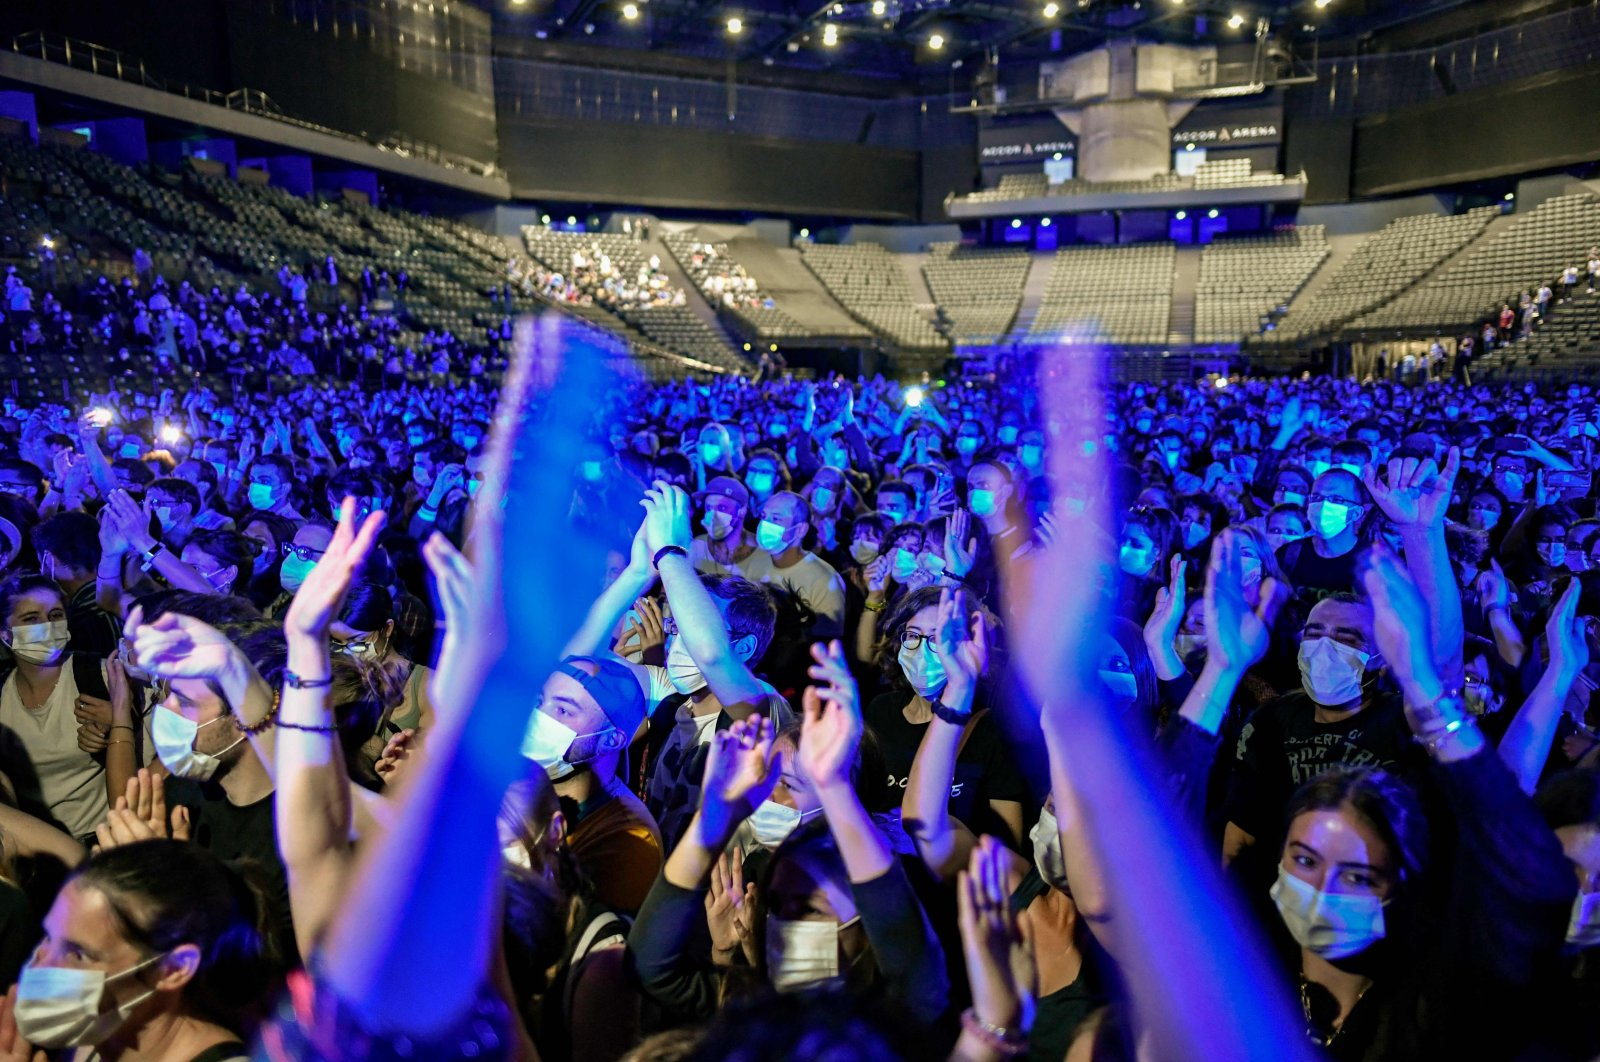 People cheer during a concert of French DJ Etienne de Crecy and rock band Indochine, aimed at assessing the risk of COVID-19 transmission at live events, at the AccorHotels Arena in Paris, France, May 29, 2021. (AFP Photo)